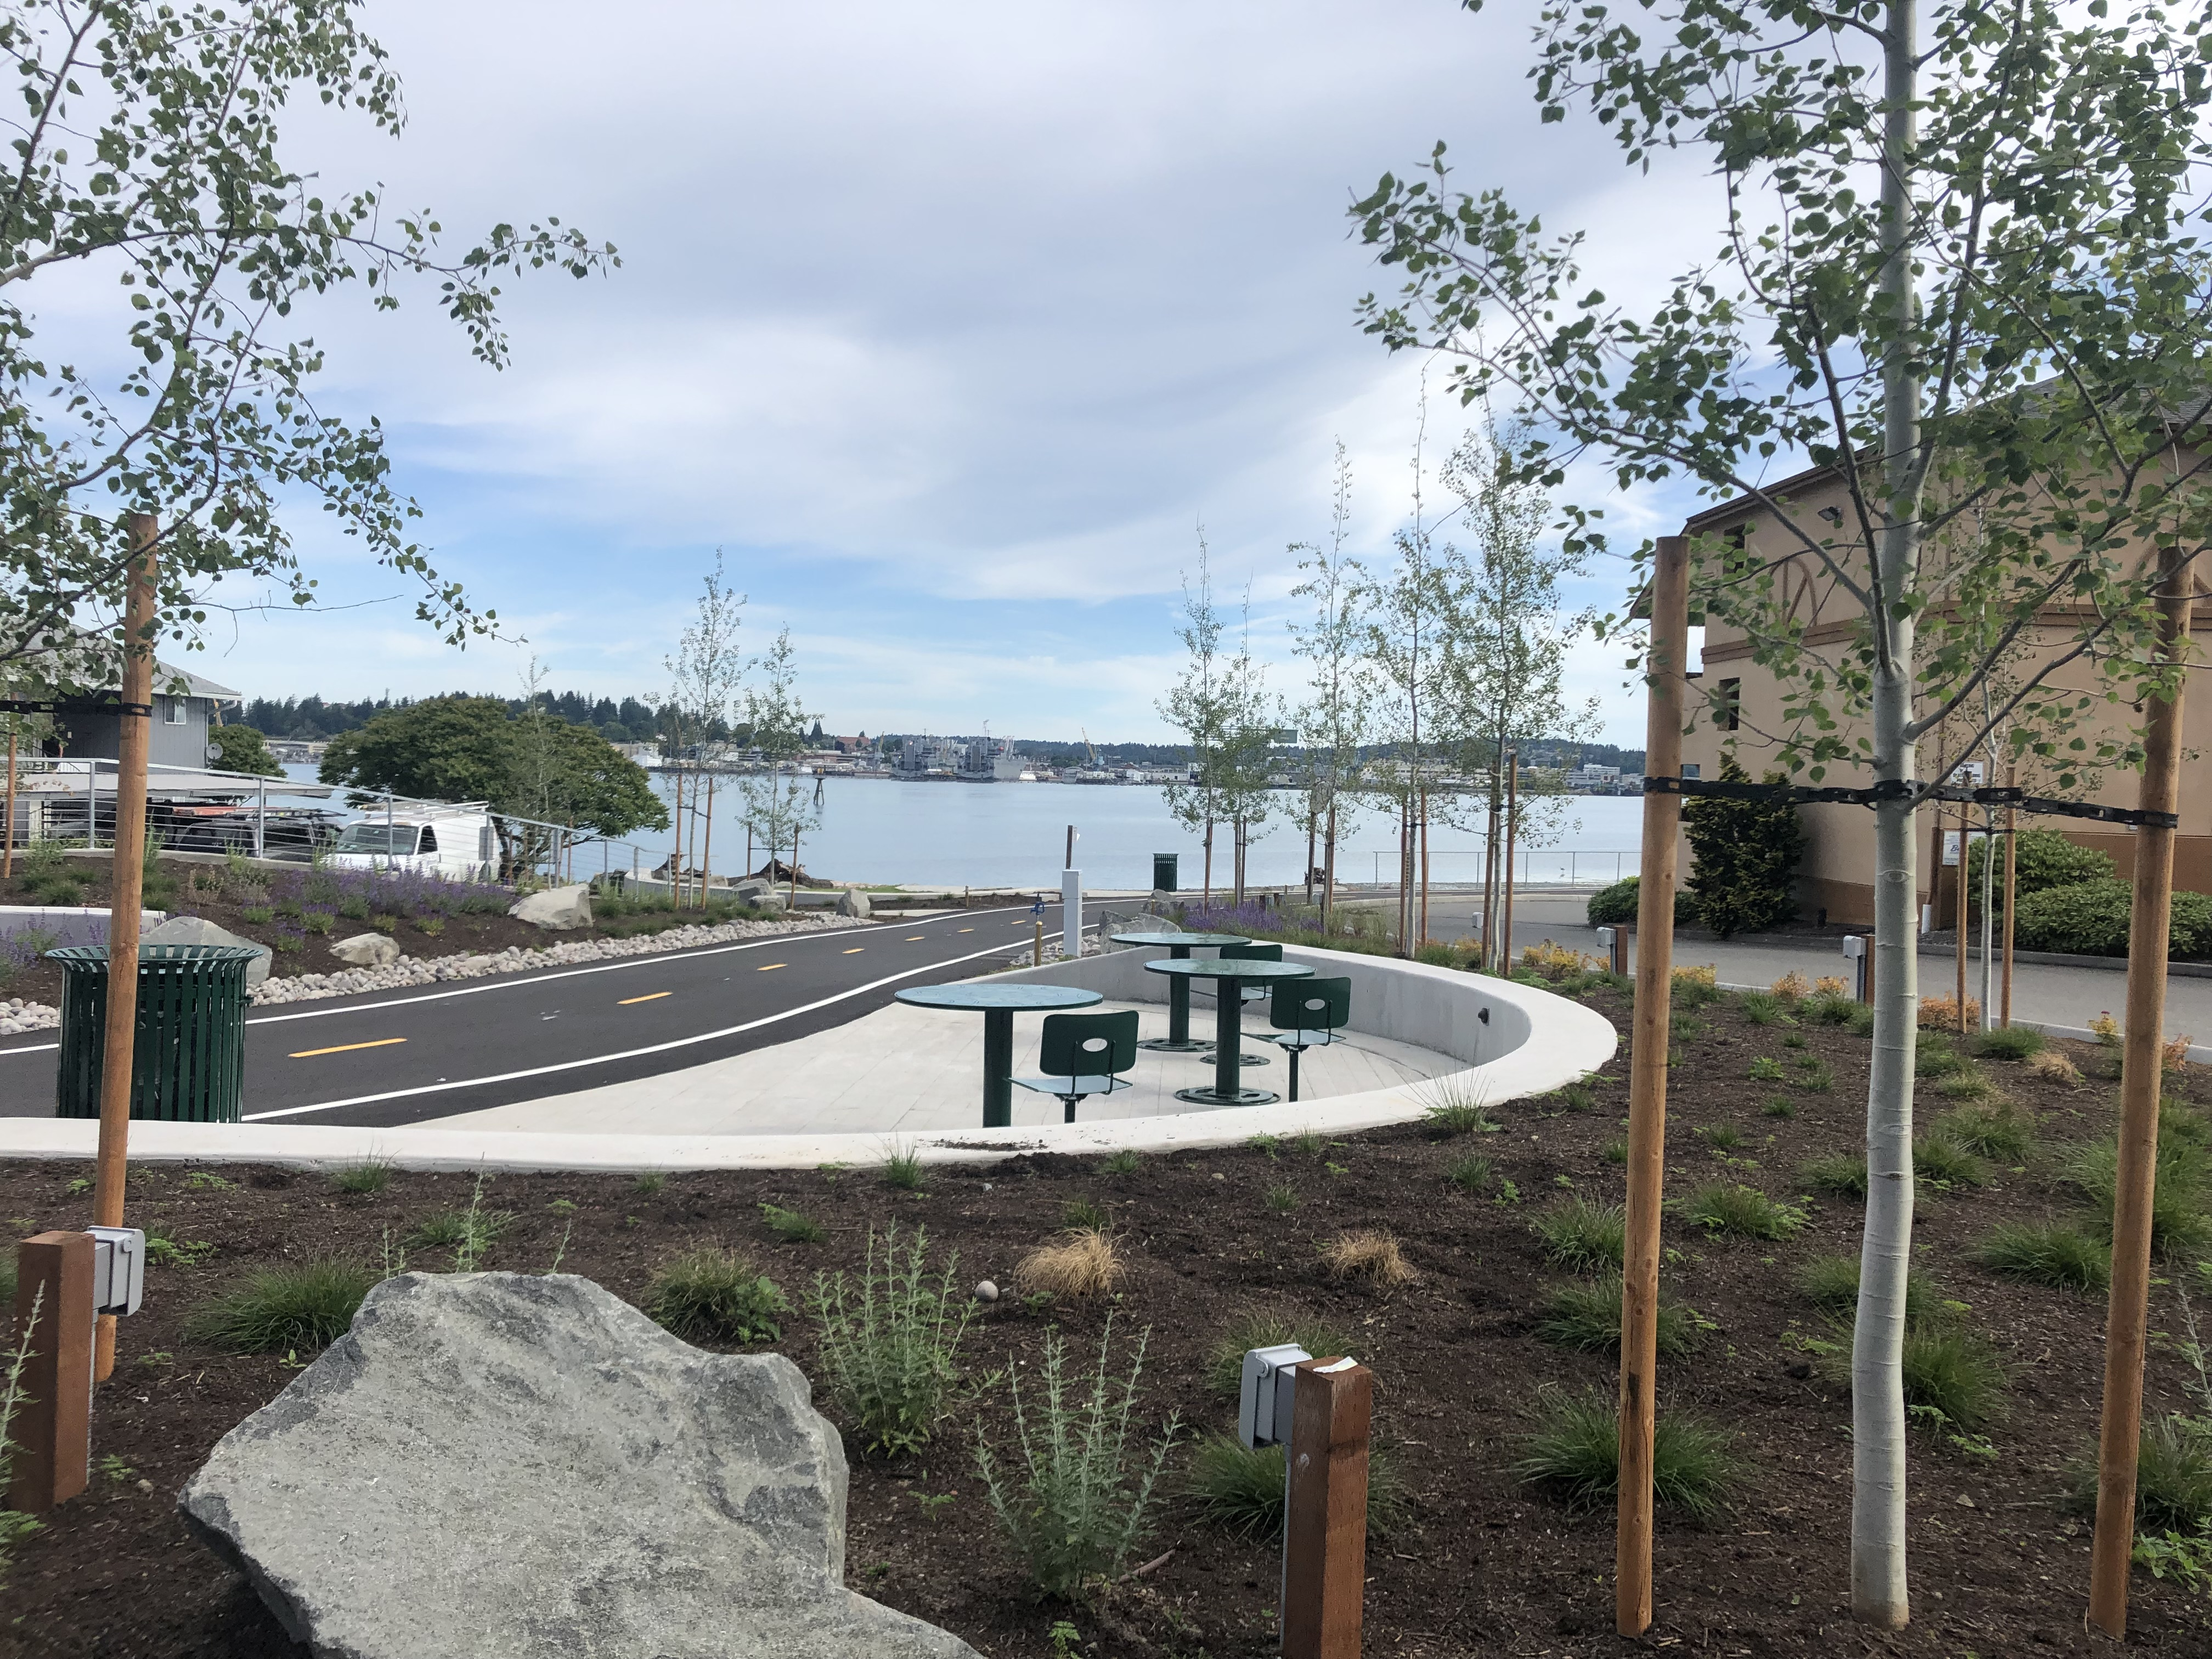 Picture of Rockwell Park and the Bay Street Pedestrian Pathway